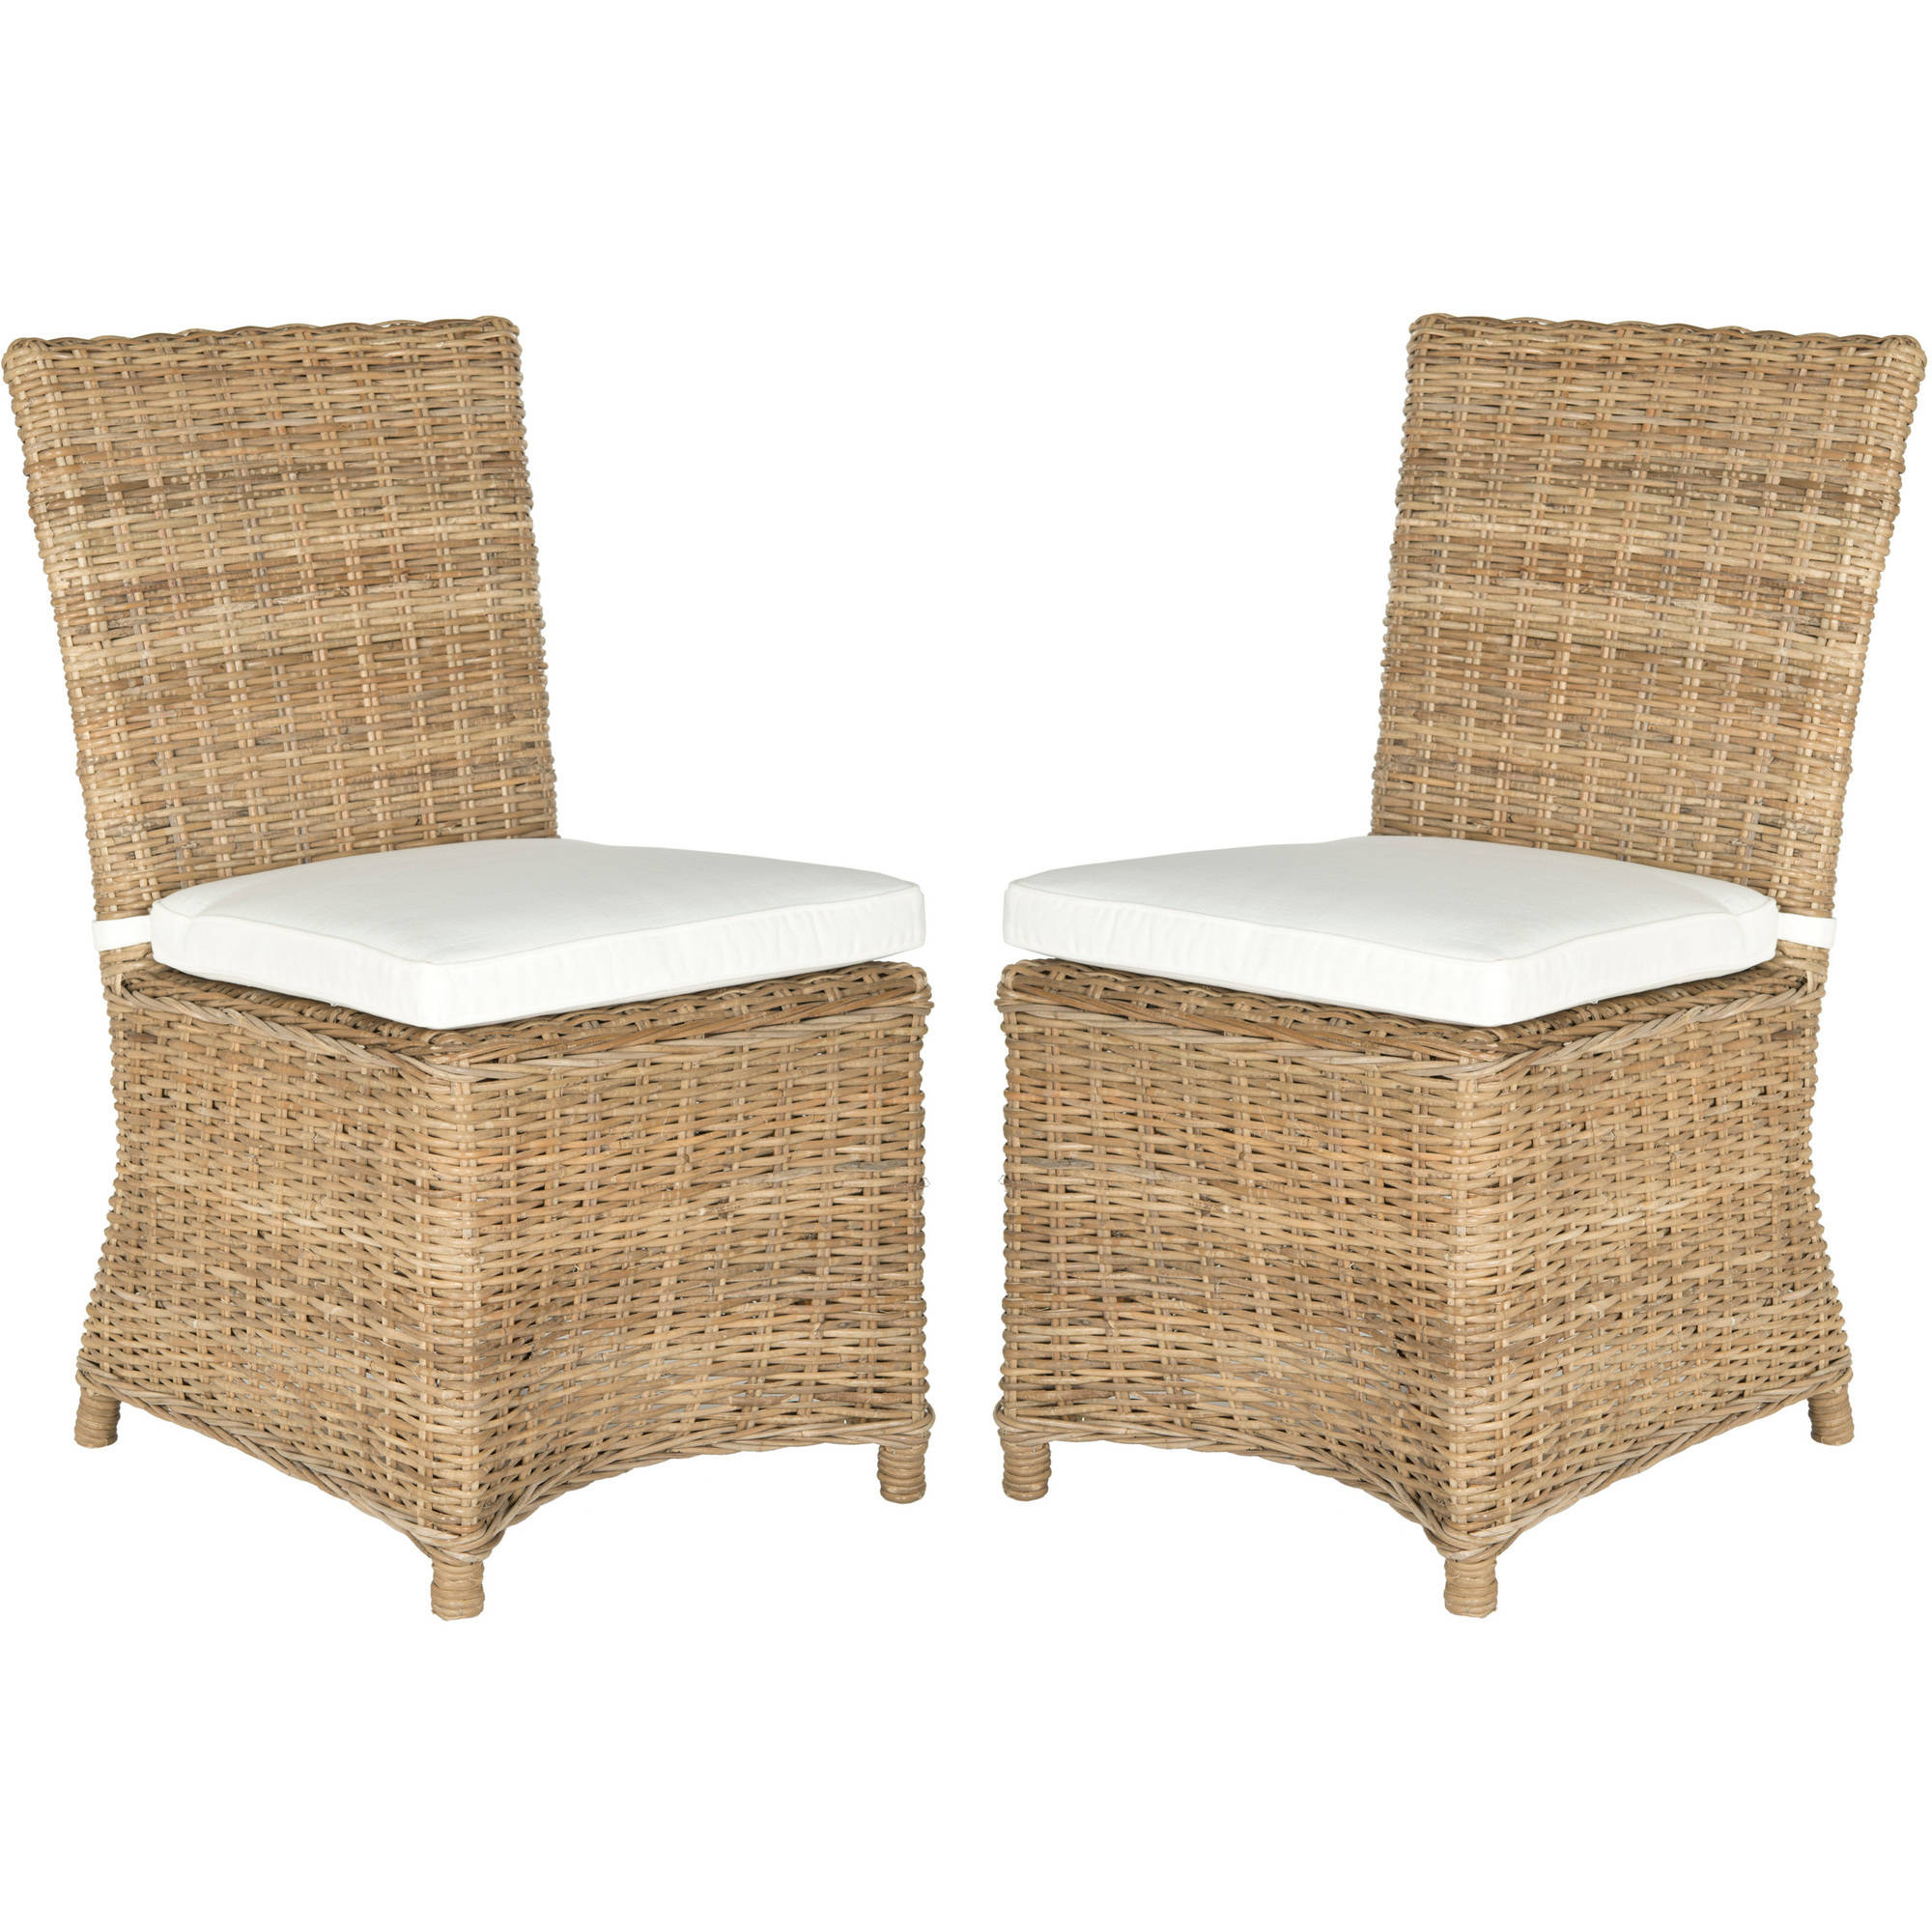 Safavieh Sebesi Side Chair, Natural, Set of 2